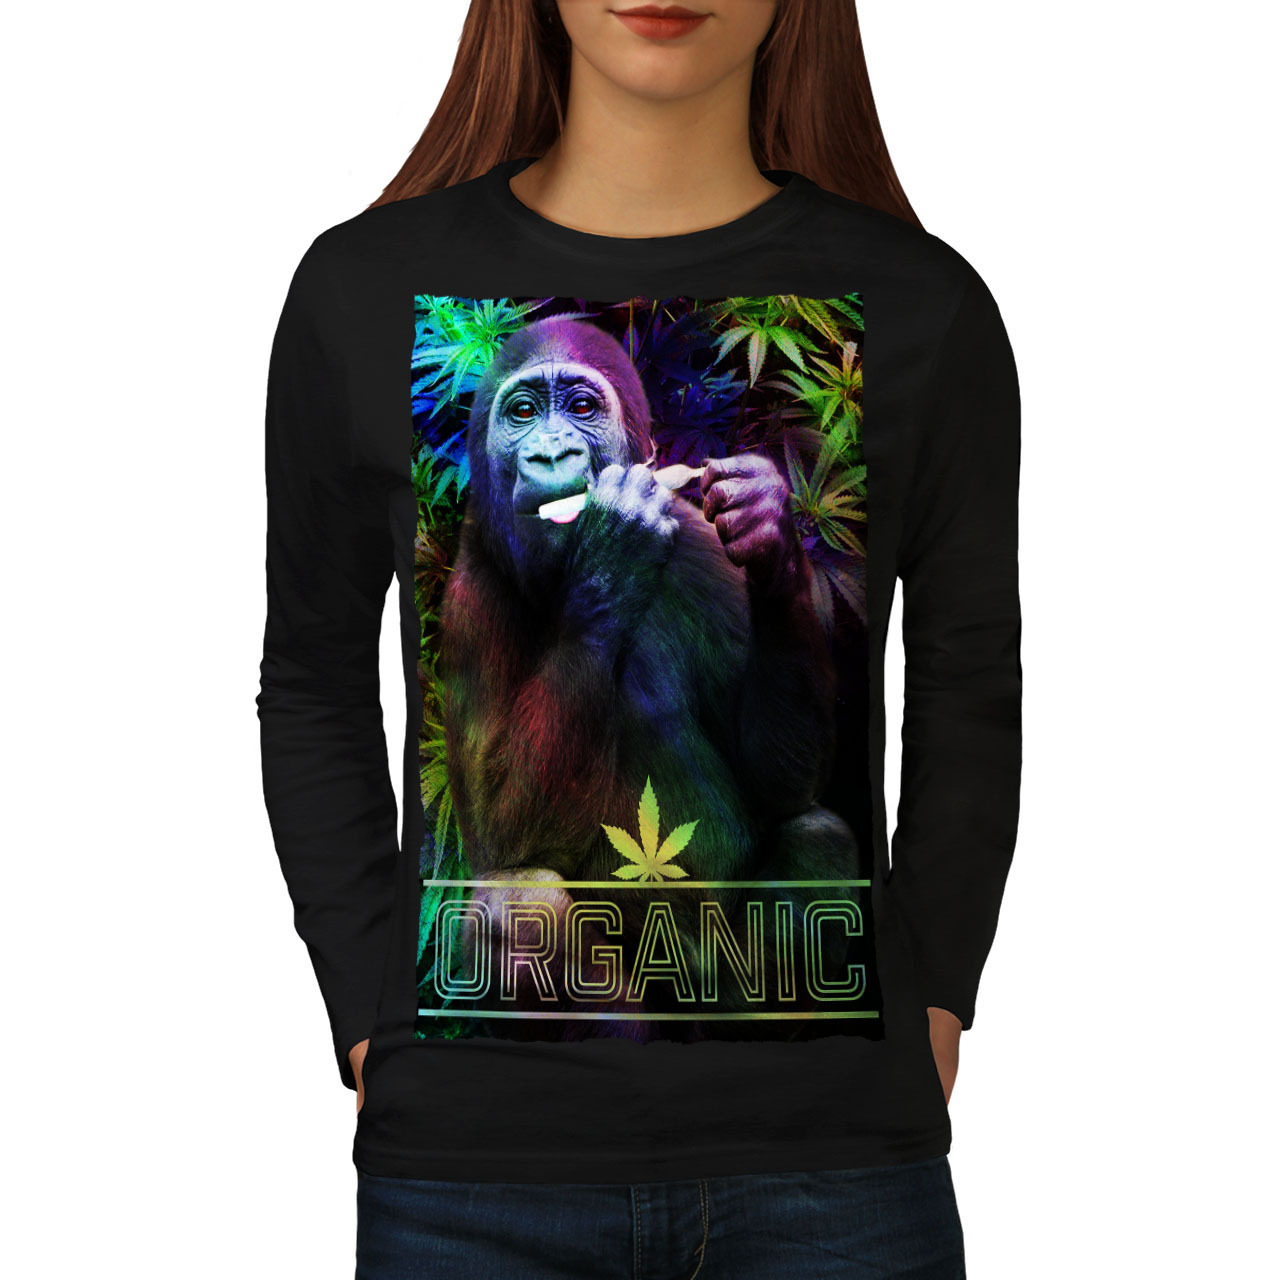 Primary image for Organic Cannabis Rasta Tee Monkey Fun Women Long Sleeve T-shirt